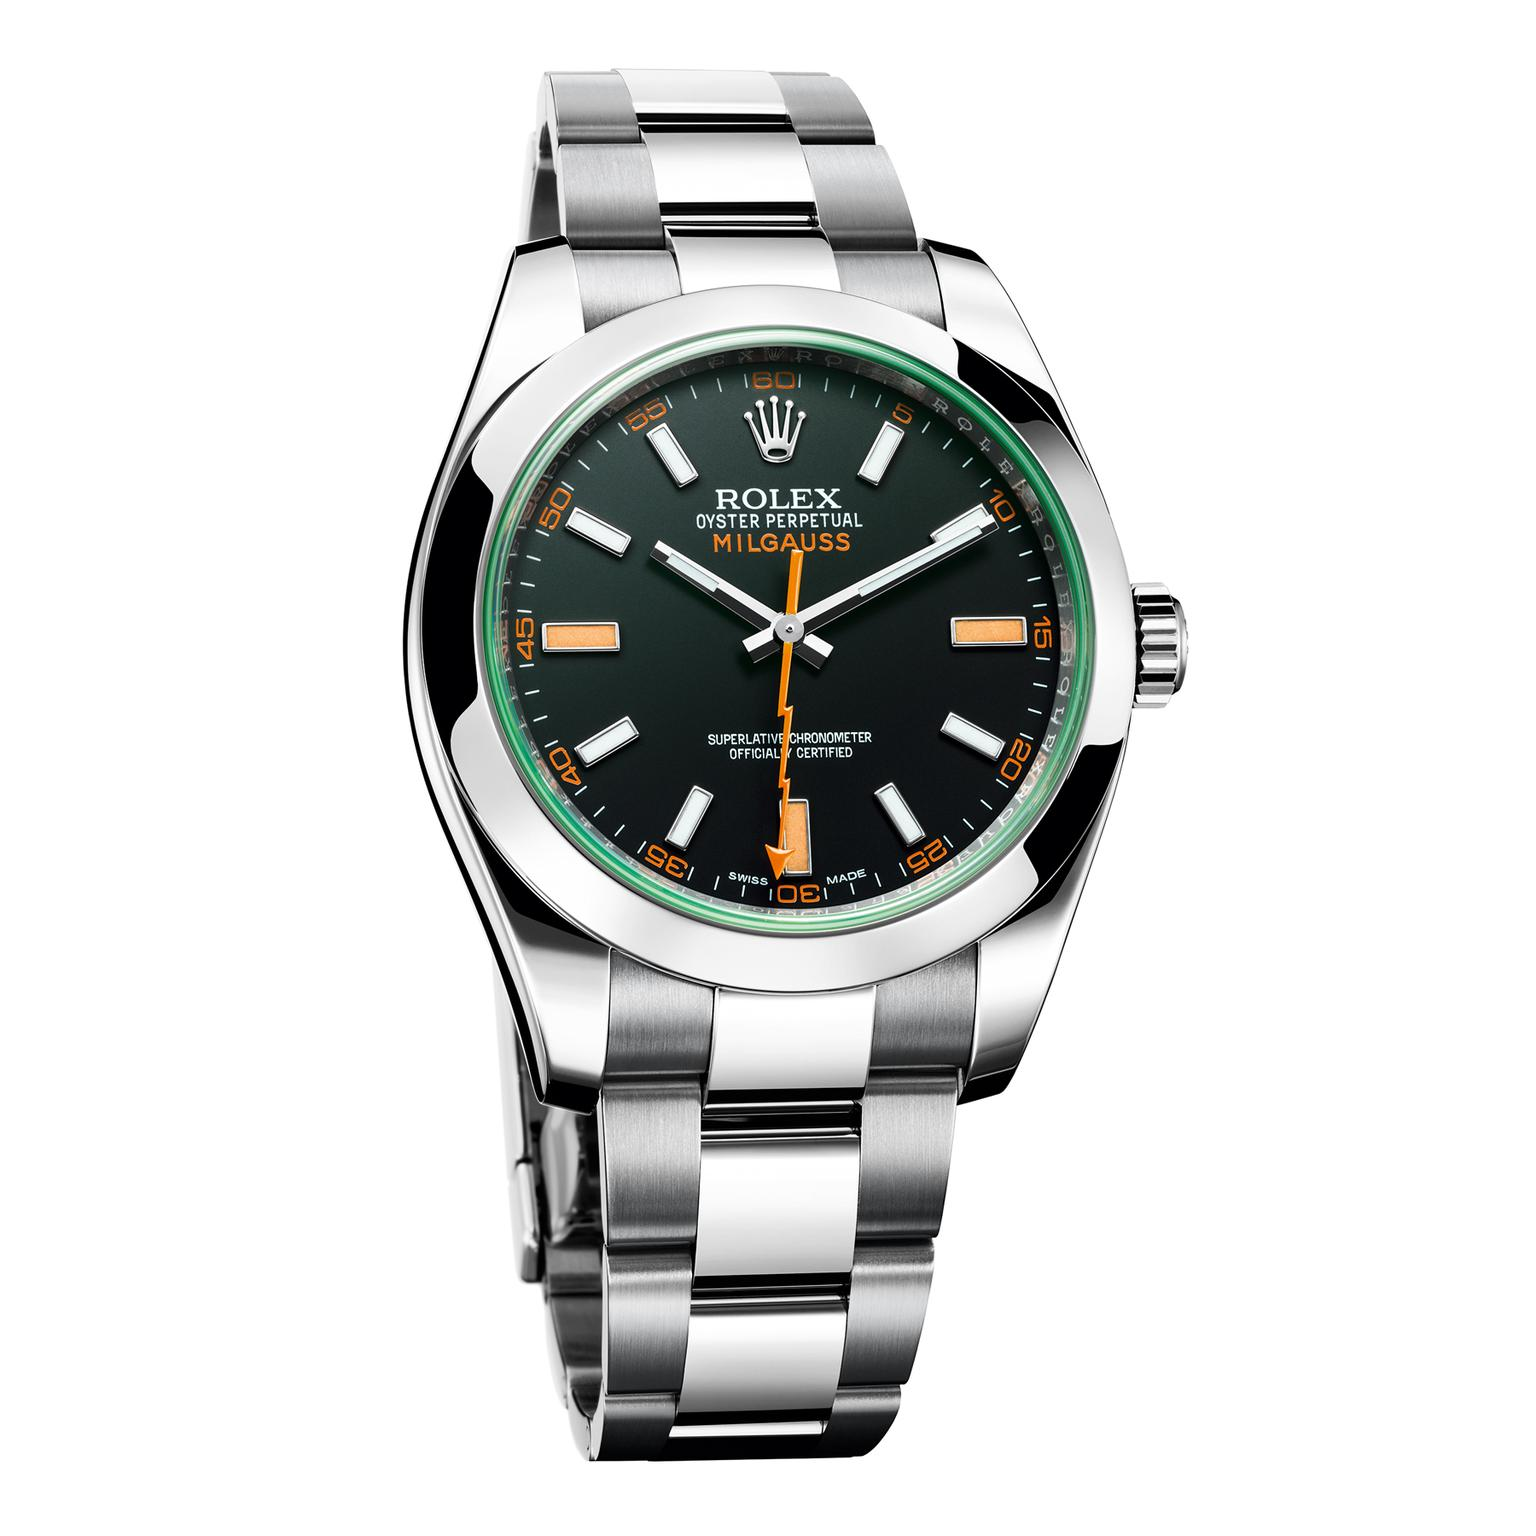 Rolex-Oyster-Perpetual-Milgauss